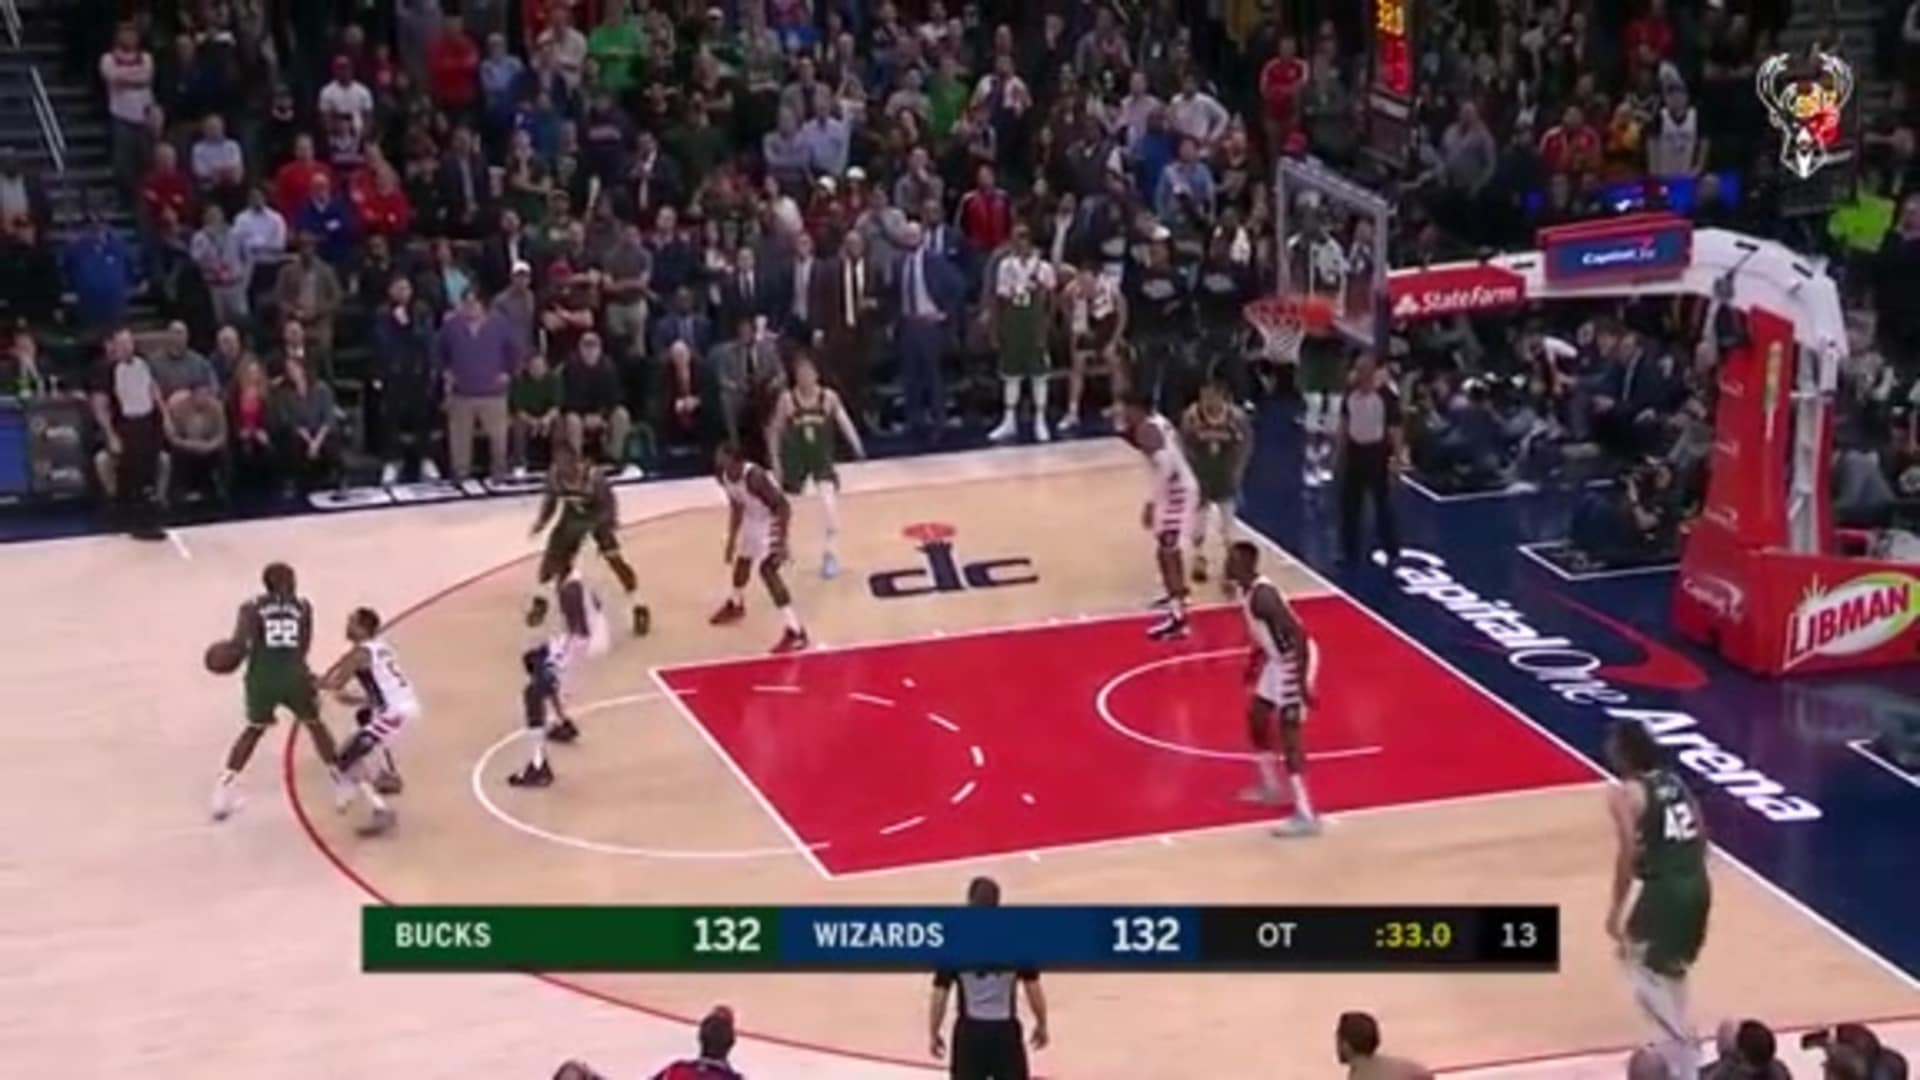 Game Highlights: Bucks 137 - Wizards 134 | 2.24.20